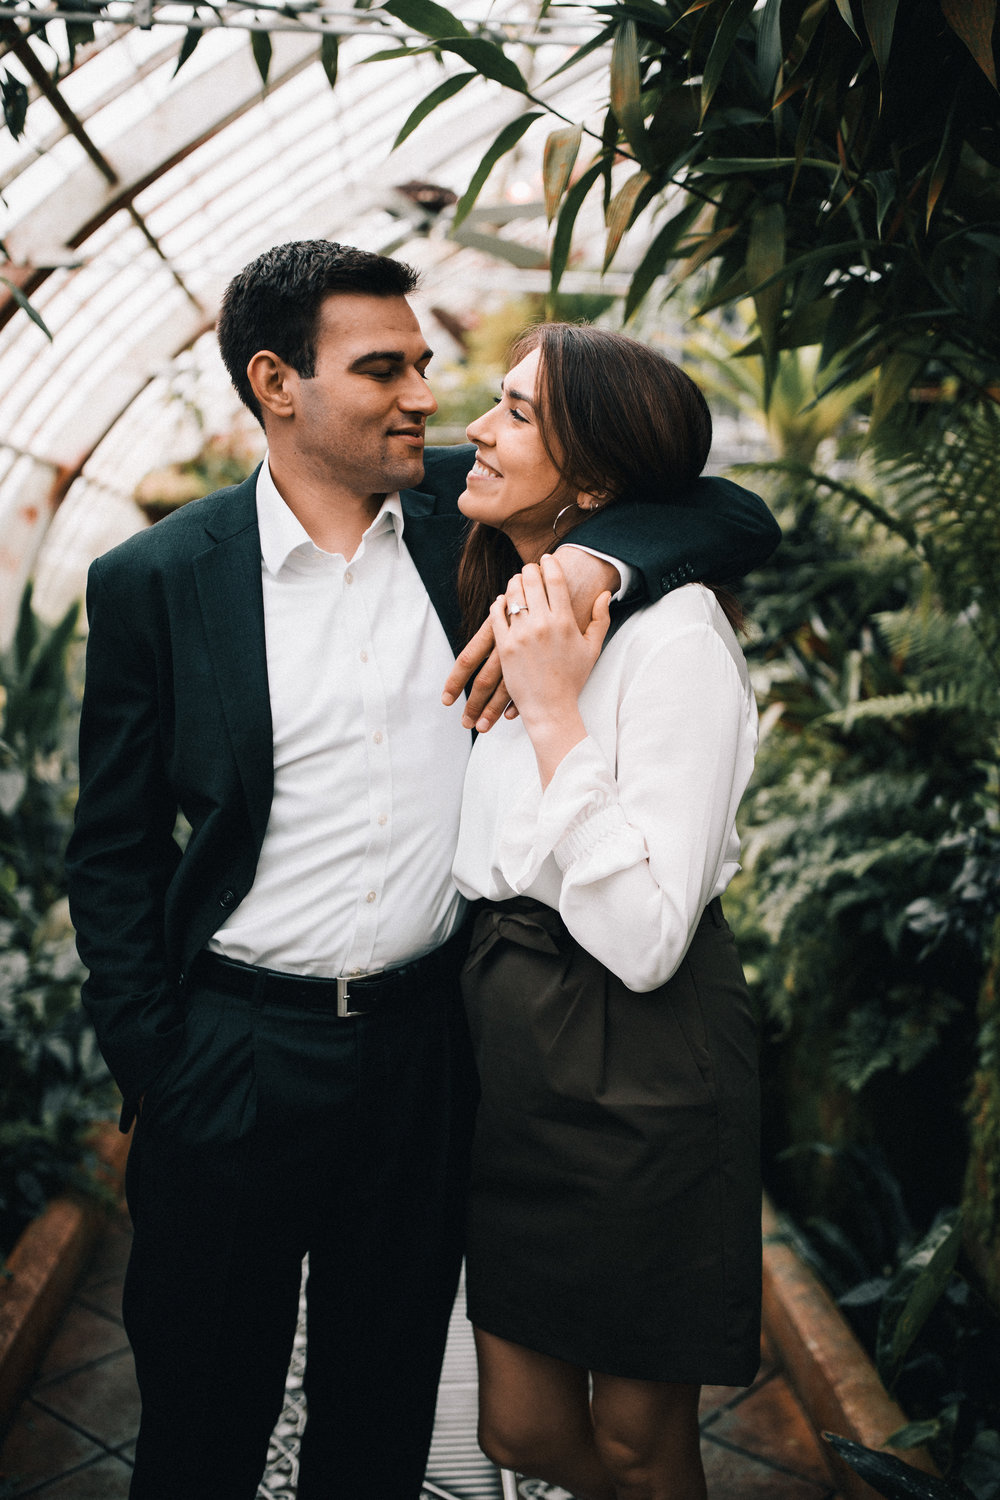 2019_04_ 072019.04.08 Ana and Richard Engagement Session Edited For Web 0013.jpg